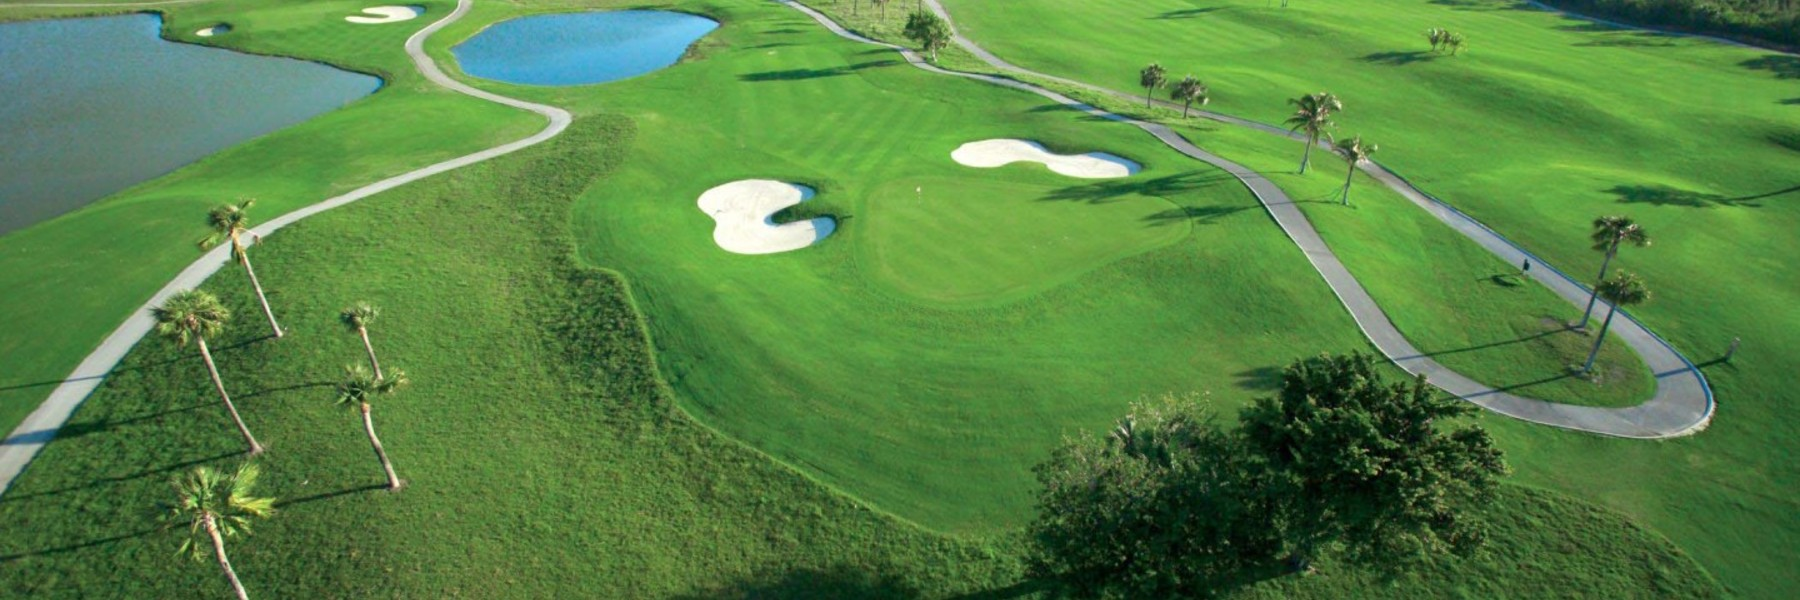 Golf Vacation Package - The Reef Course